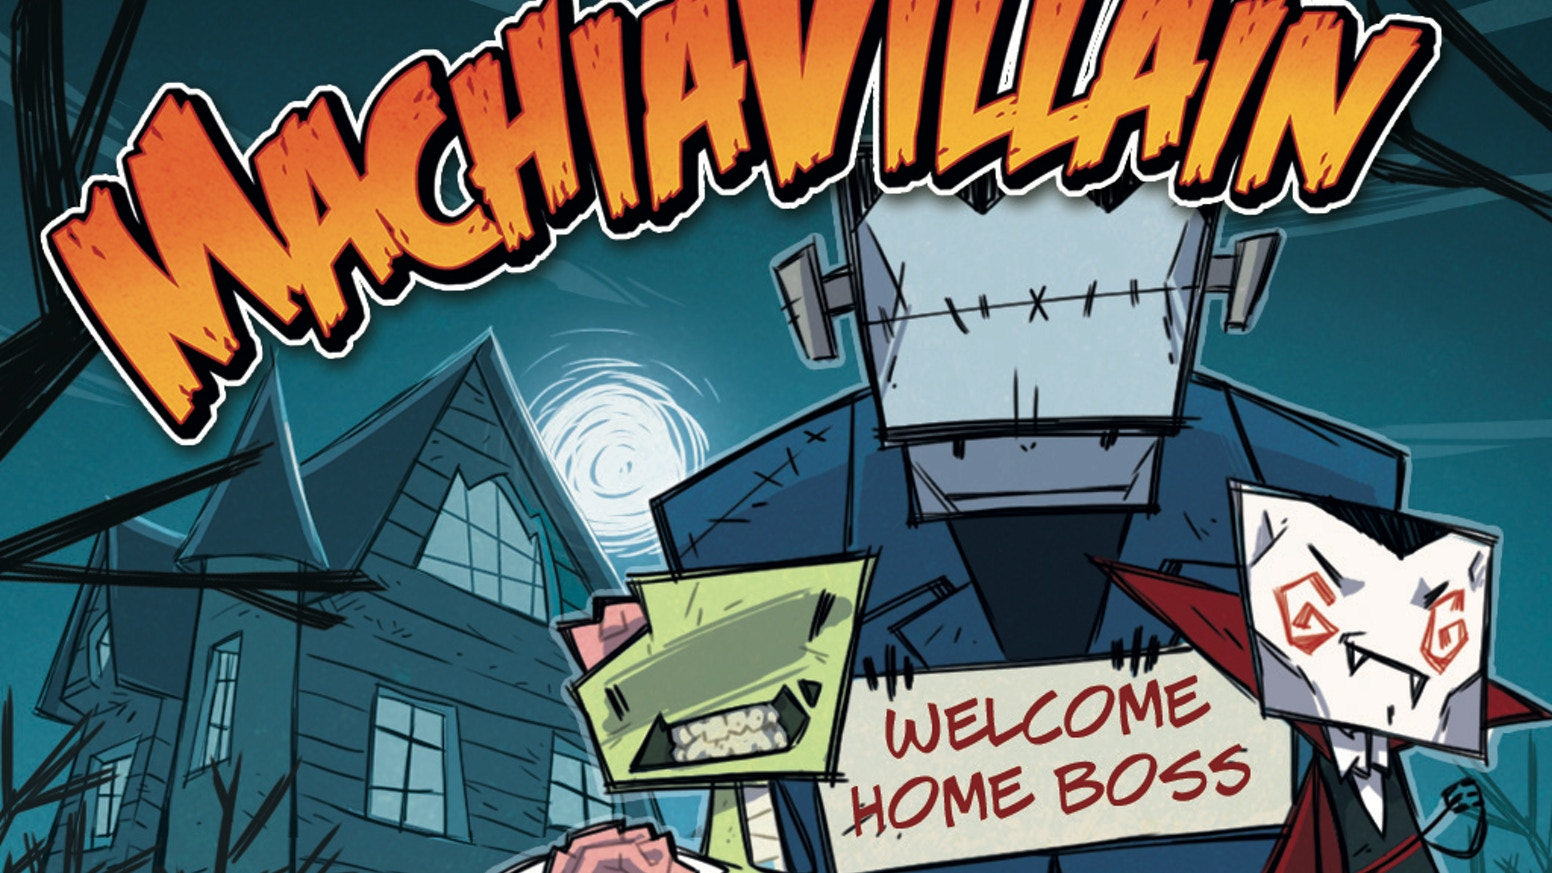 You're the Villain! Build your mansion, raise your monsters, and slaughter visitors! PC, Mac, Linux